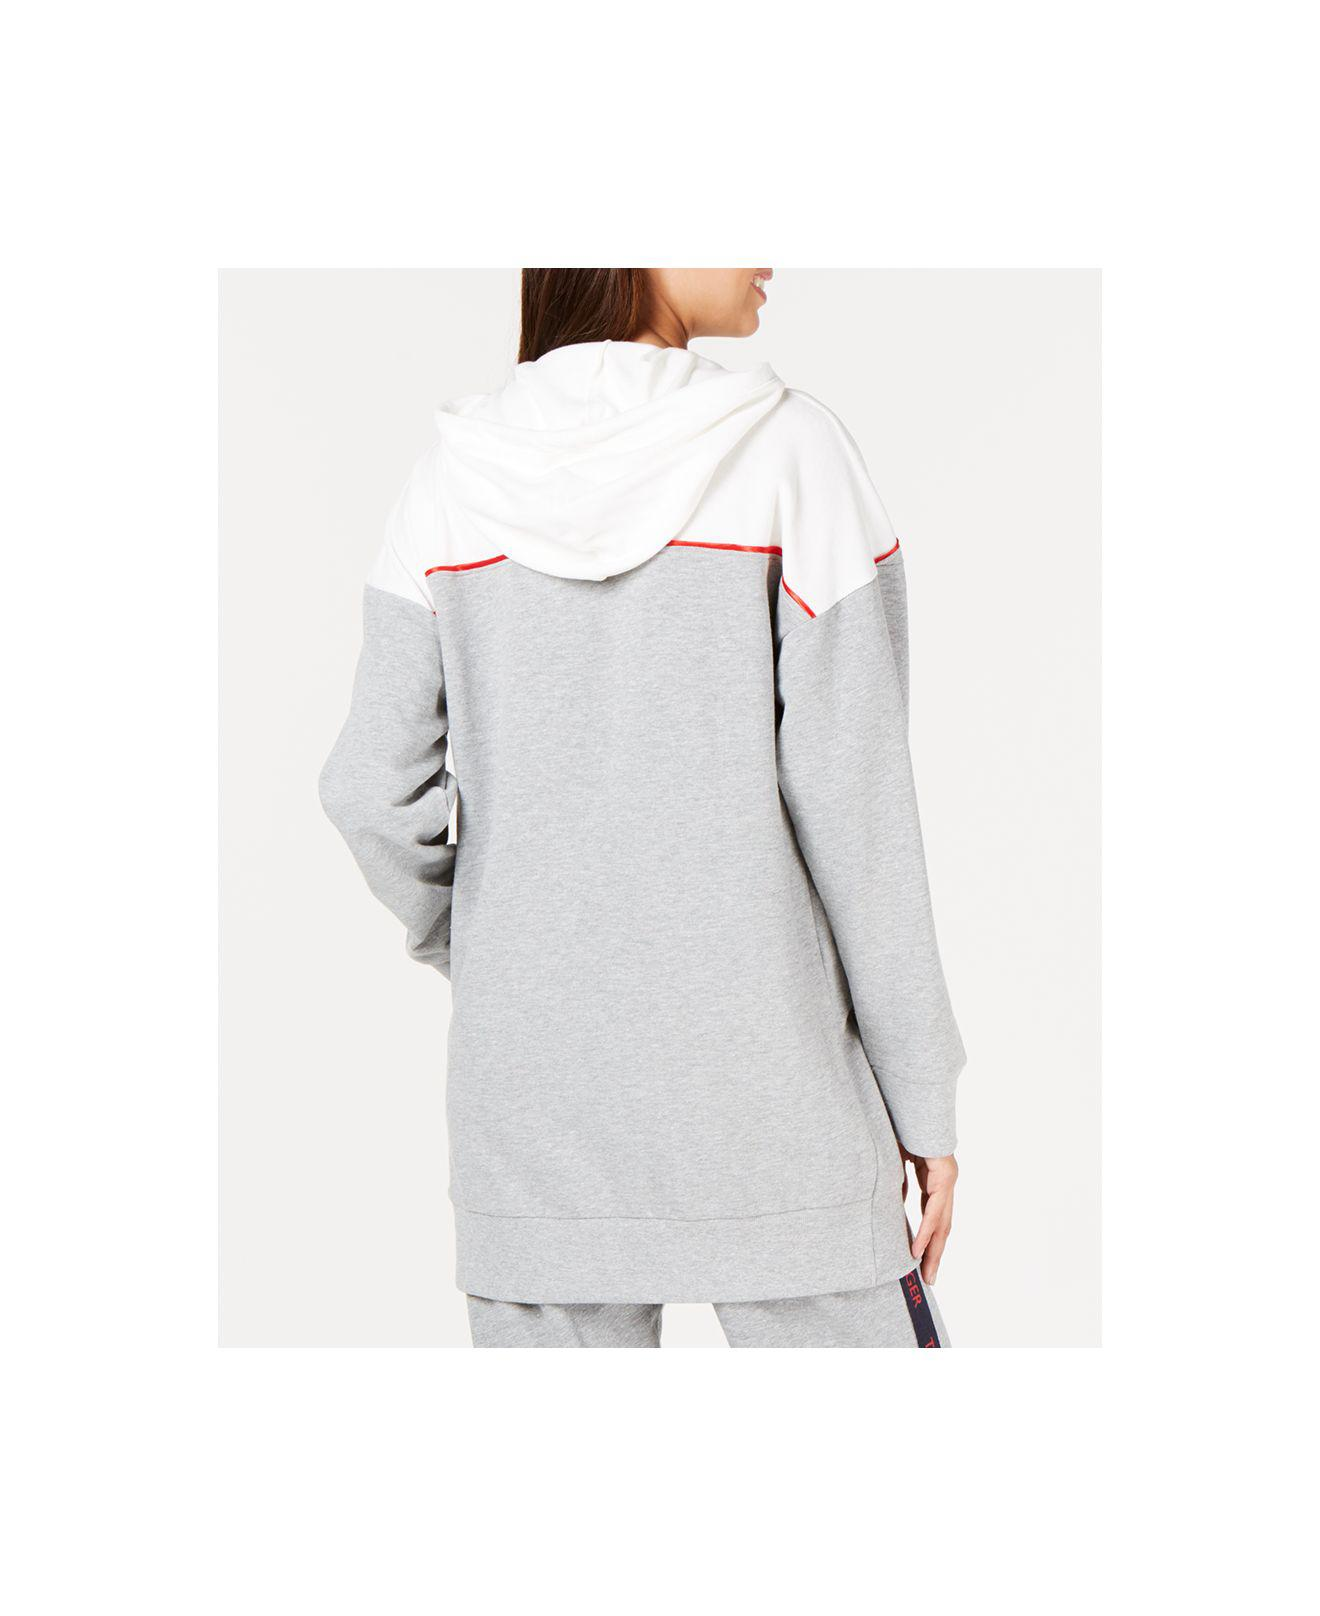 5defe2711d Lyst - Tommy Hilfiger Oversized Logo Velour Lounge Hoodie in Gray - Save  52.0%